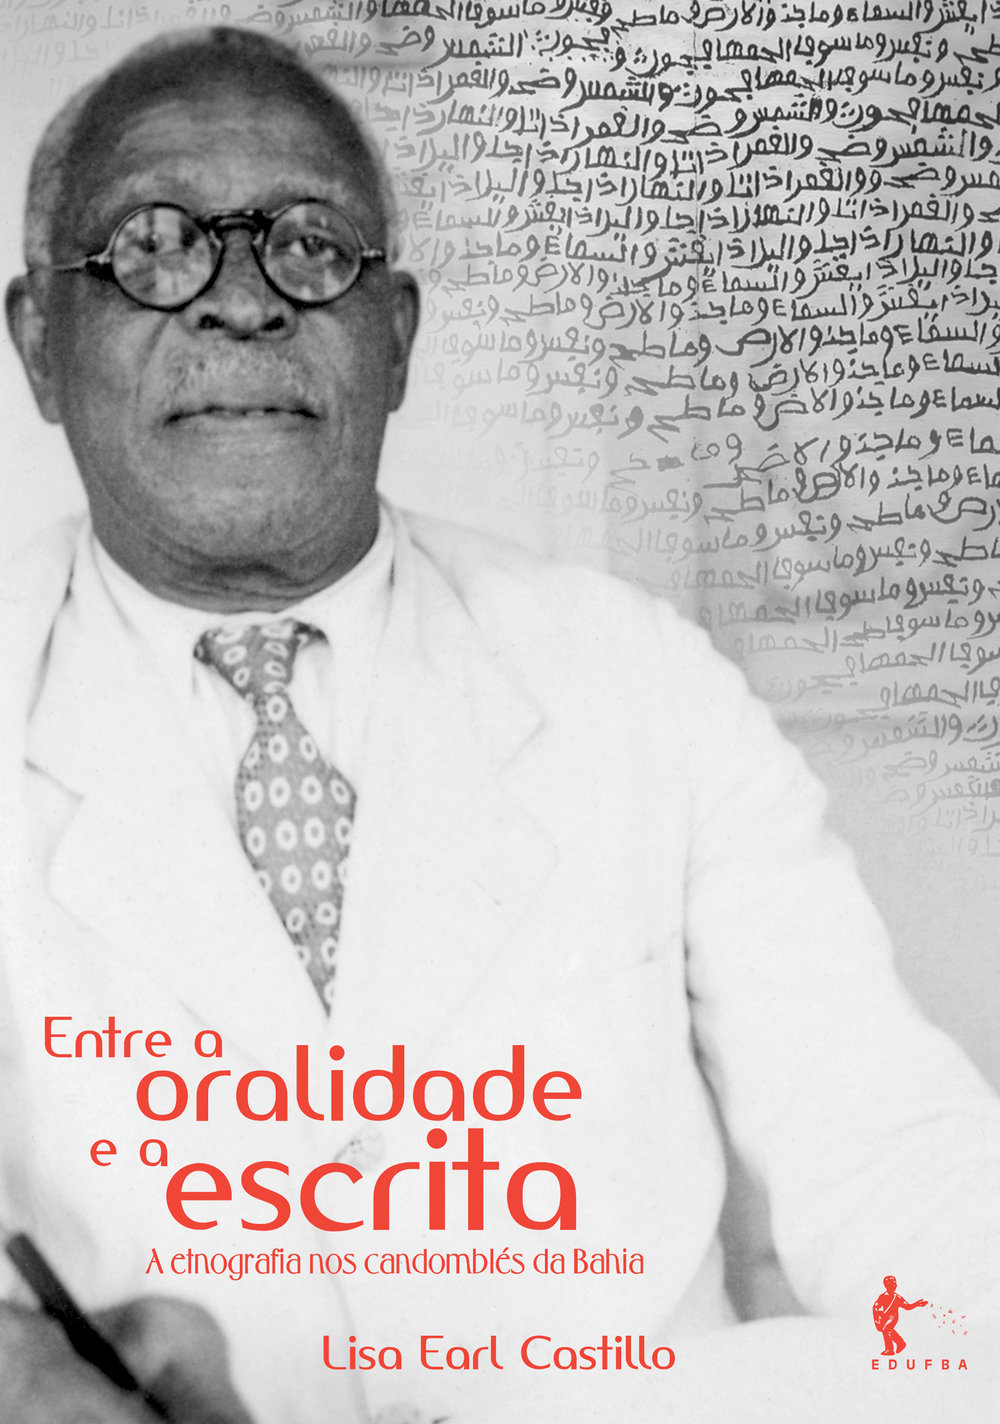 The book cover of Lisa Earl Castillo's publication, showing Martiniano Eliseu do Bonfim, an important figure in candomblé during the early 20th century. Born in 1859, the son of Nagô freedmen, as an adolescent Martiniano was taken by his father to Lagos, where he lived for eleven years. He is remembered today as a babalaô, but he was also an oje (egúngún priest). The book is available to download in the  Google Store .